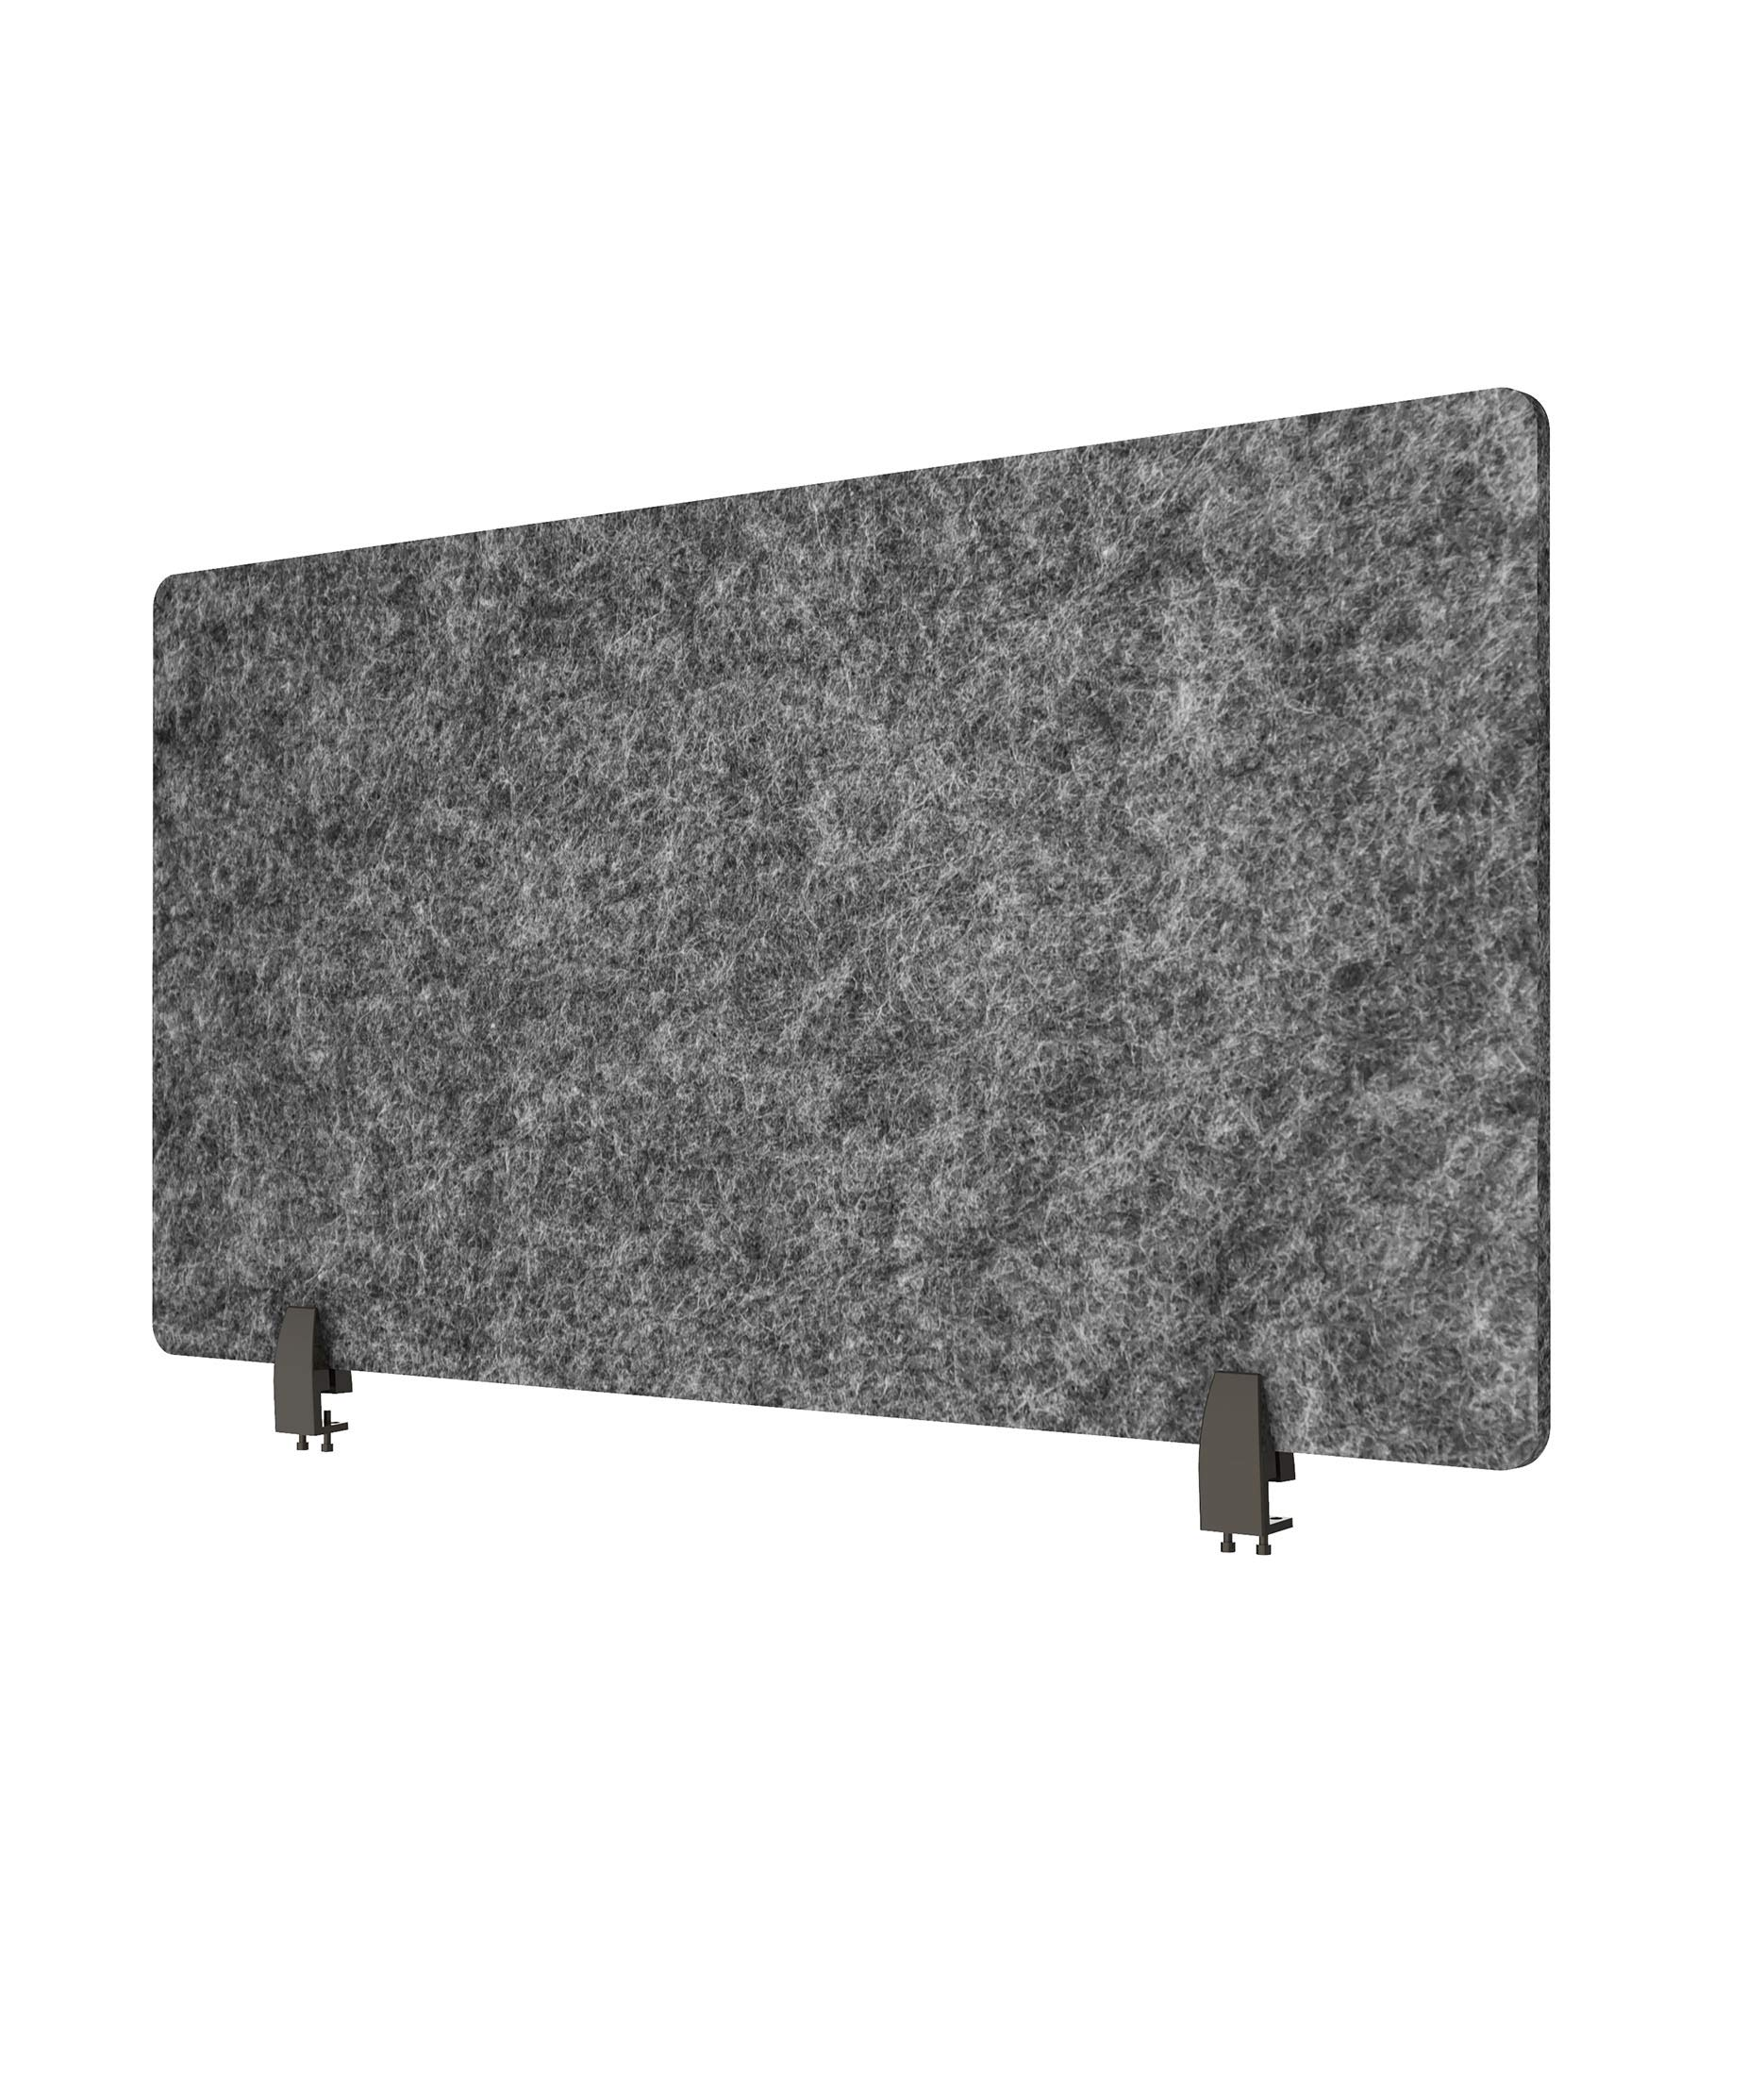 ReFocus Raw Clamp-On Acoustic Desk Divider - Reduce Noise and Visual Distractions with This Lightweight Desk Mounted Privacy Panel (Anthracite Gray, 48'' X 16'')